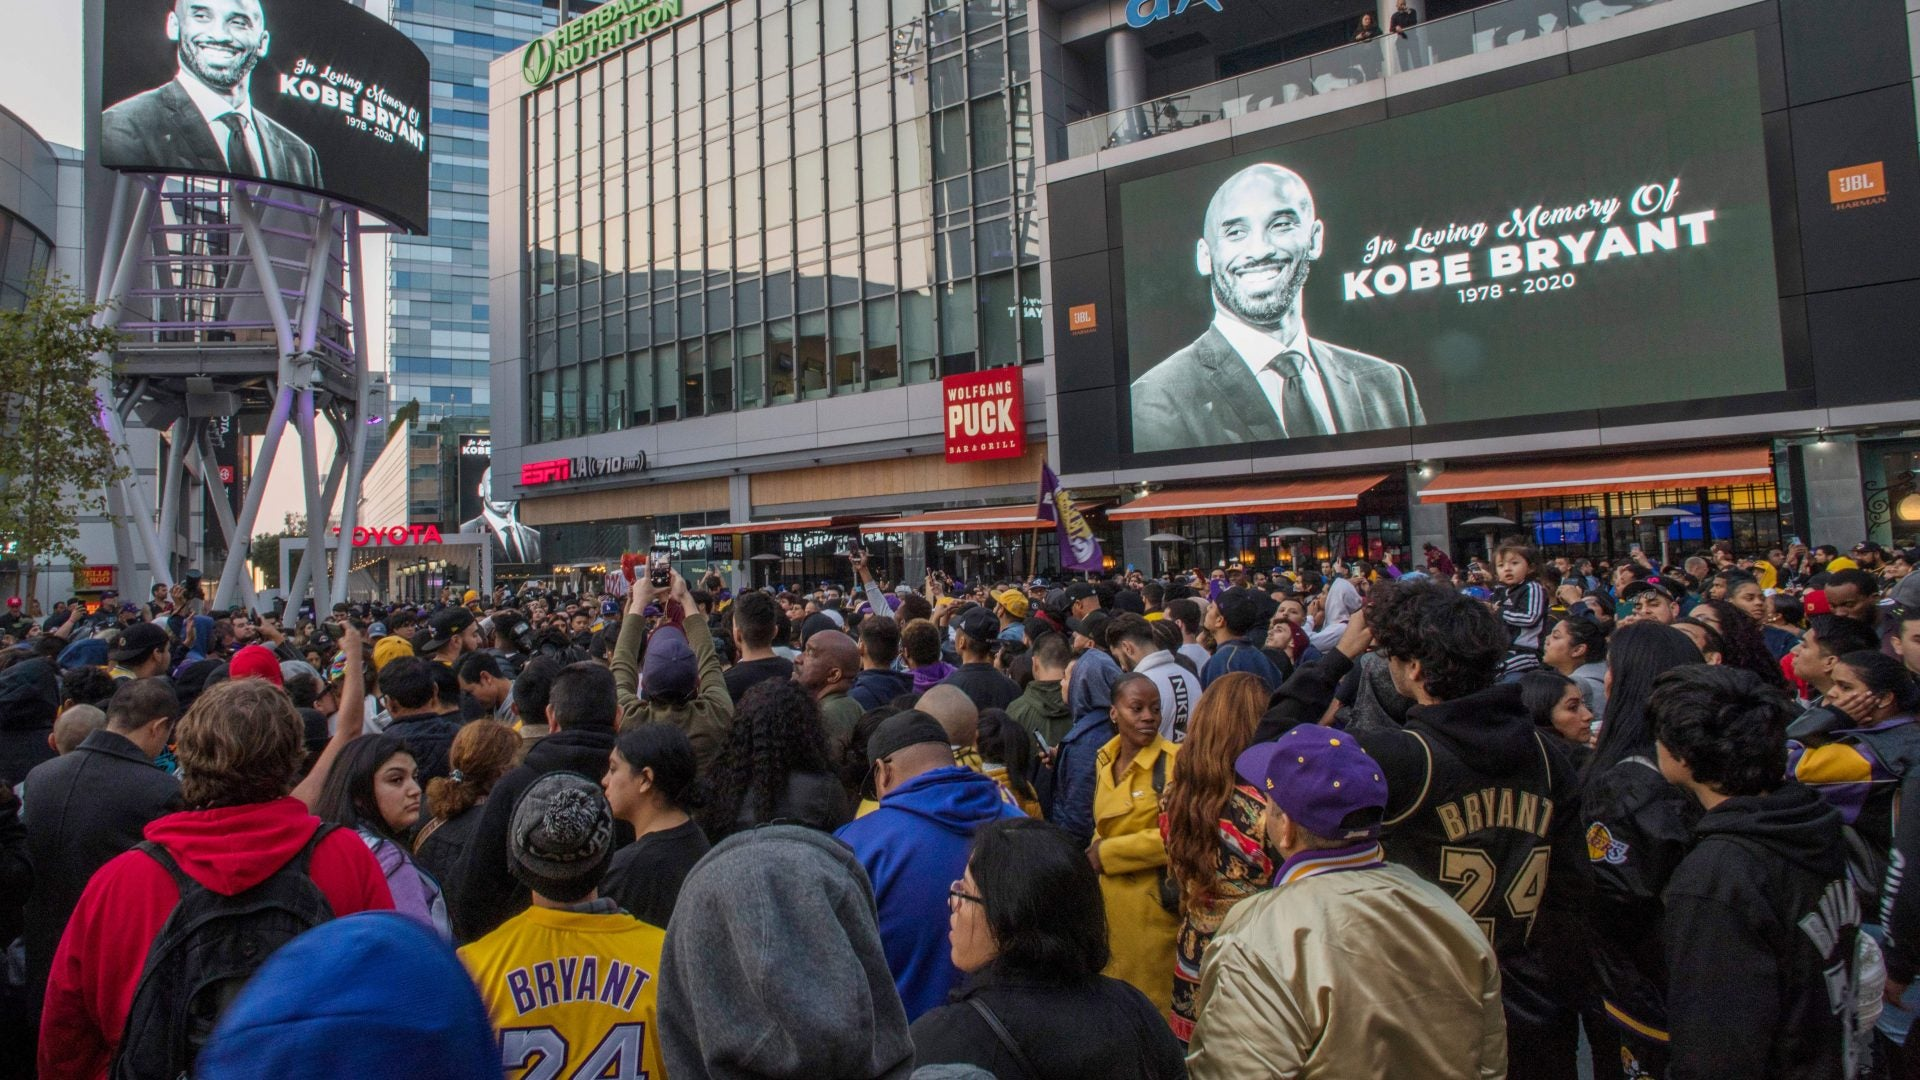 Investigation Into Kobe Bryant Helicopter Crash Could Focus On Fog: Reports